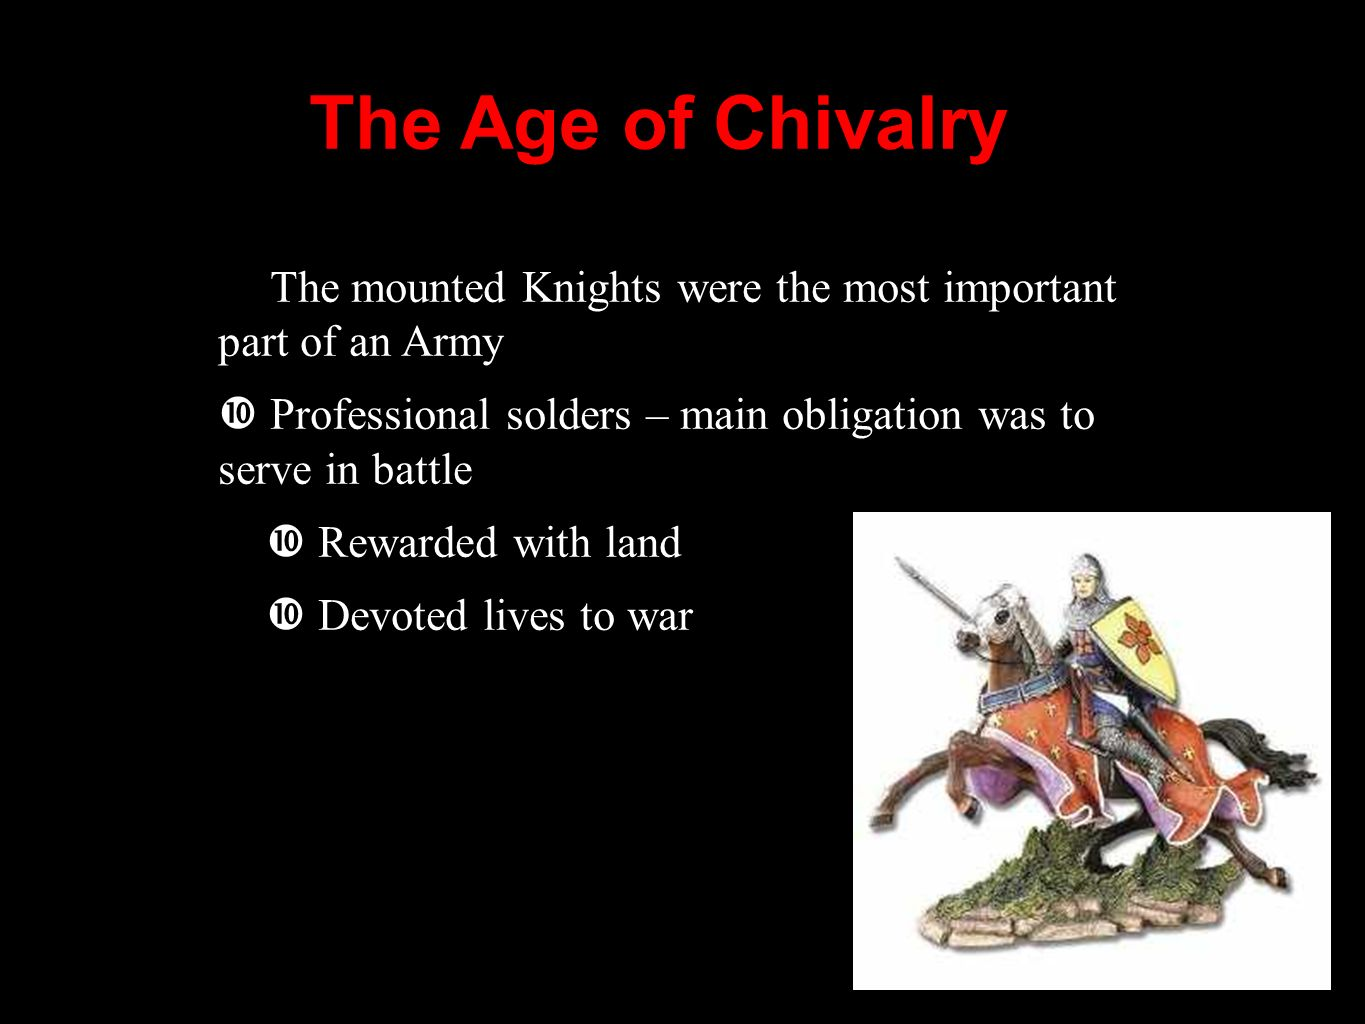 The Age of Chivalry The mounted Knights were the most important part of an Army. Professional solders – main obligation was to serve in battle.